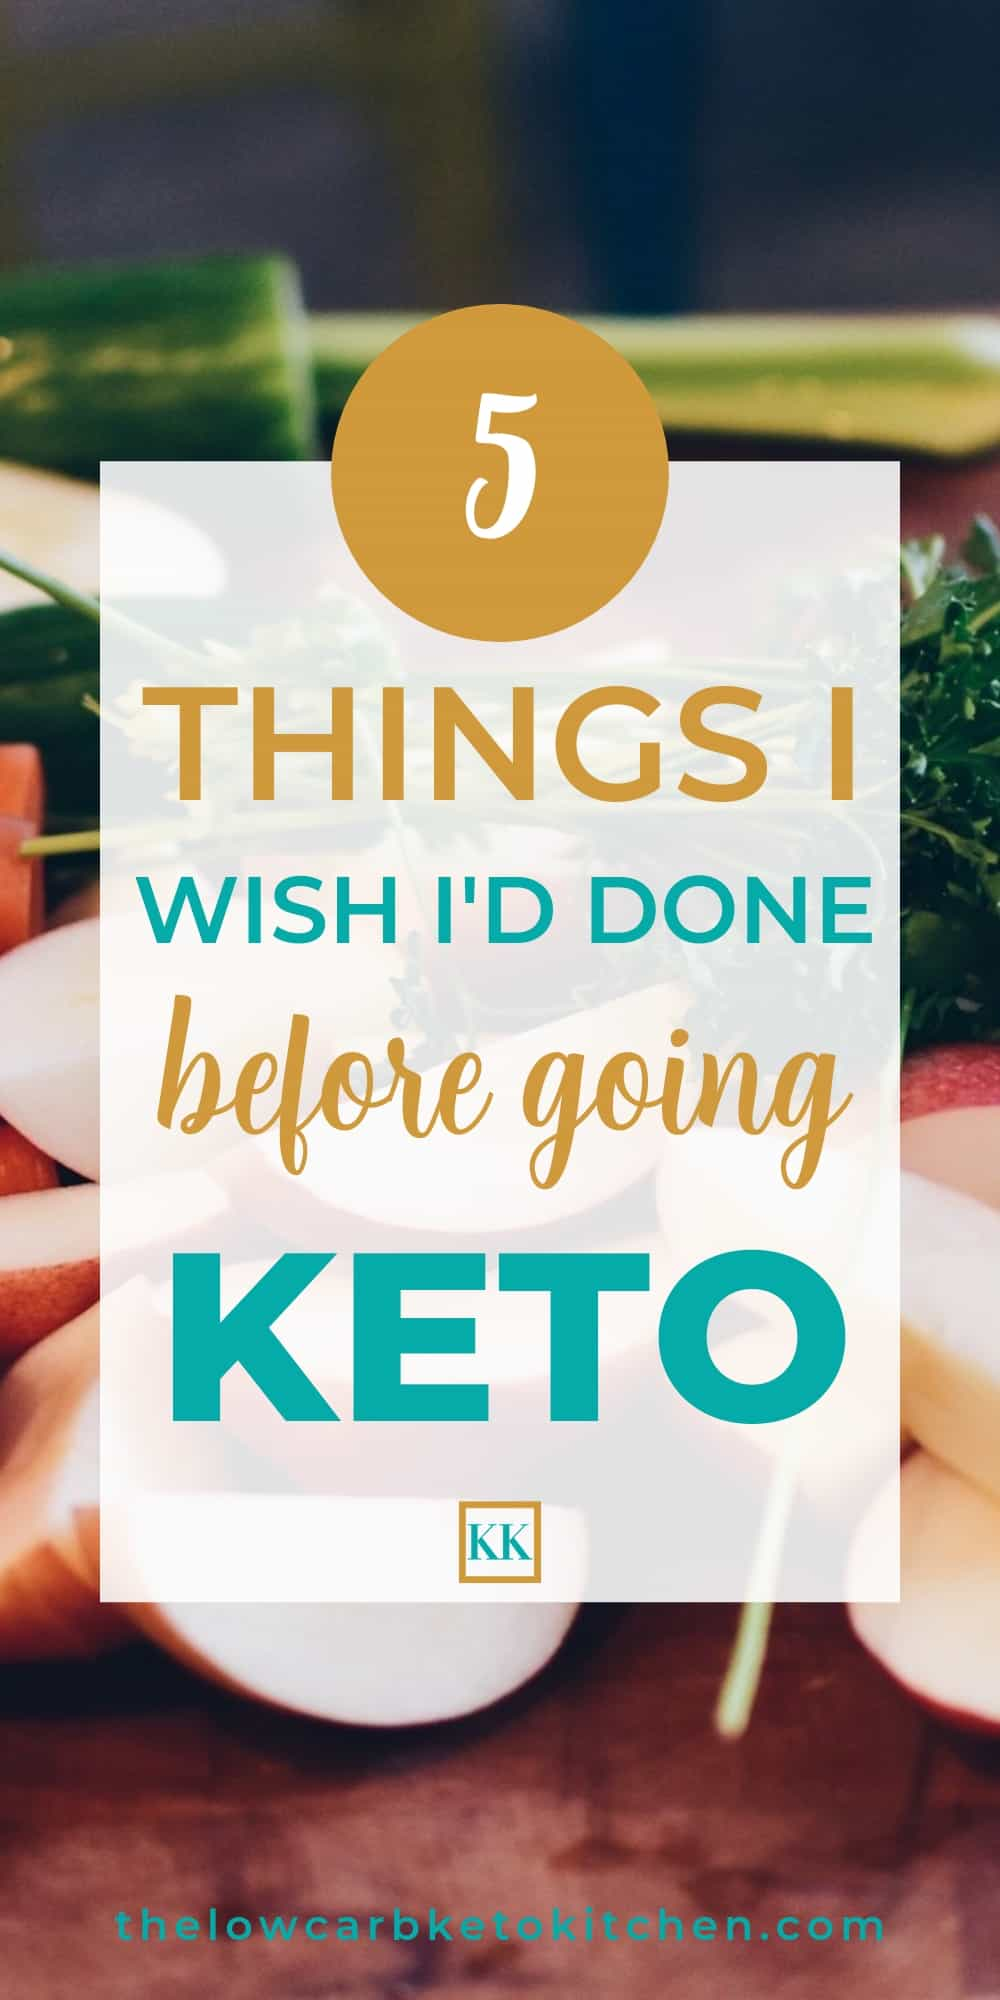 5 Things I Wish I'd Done Before Going Keto